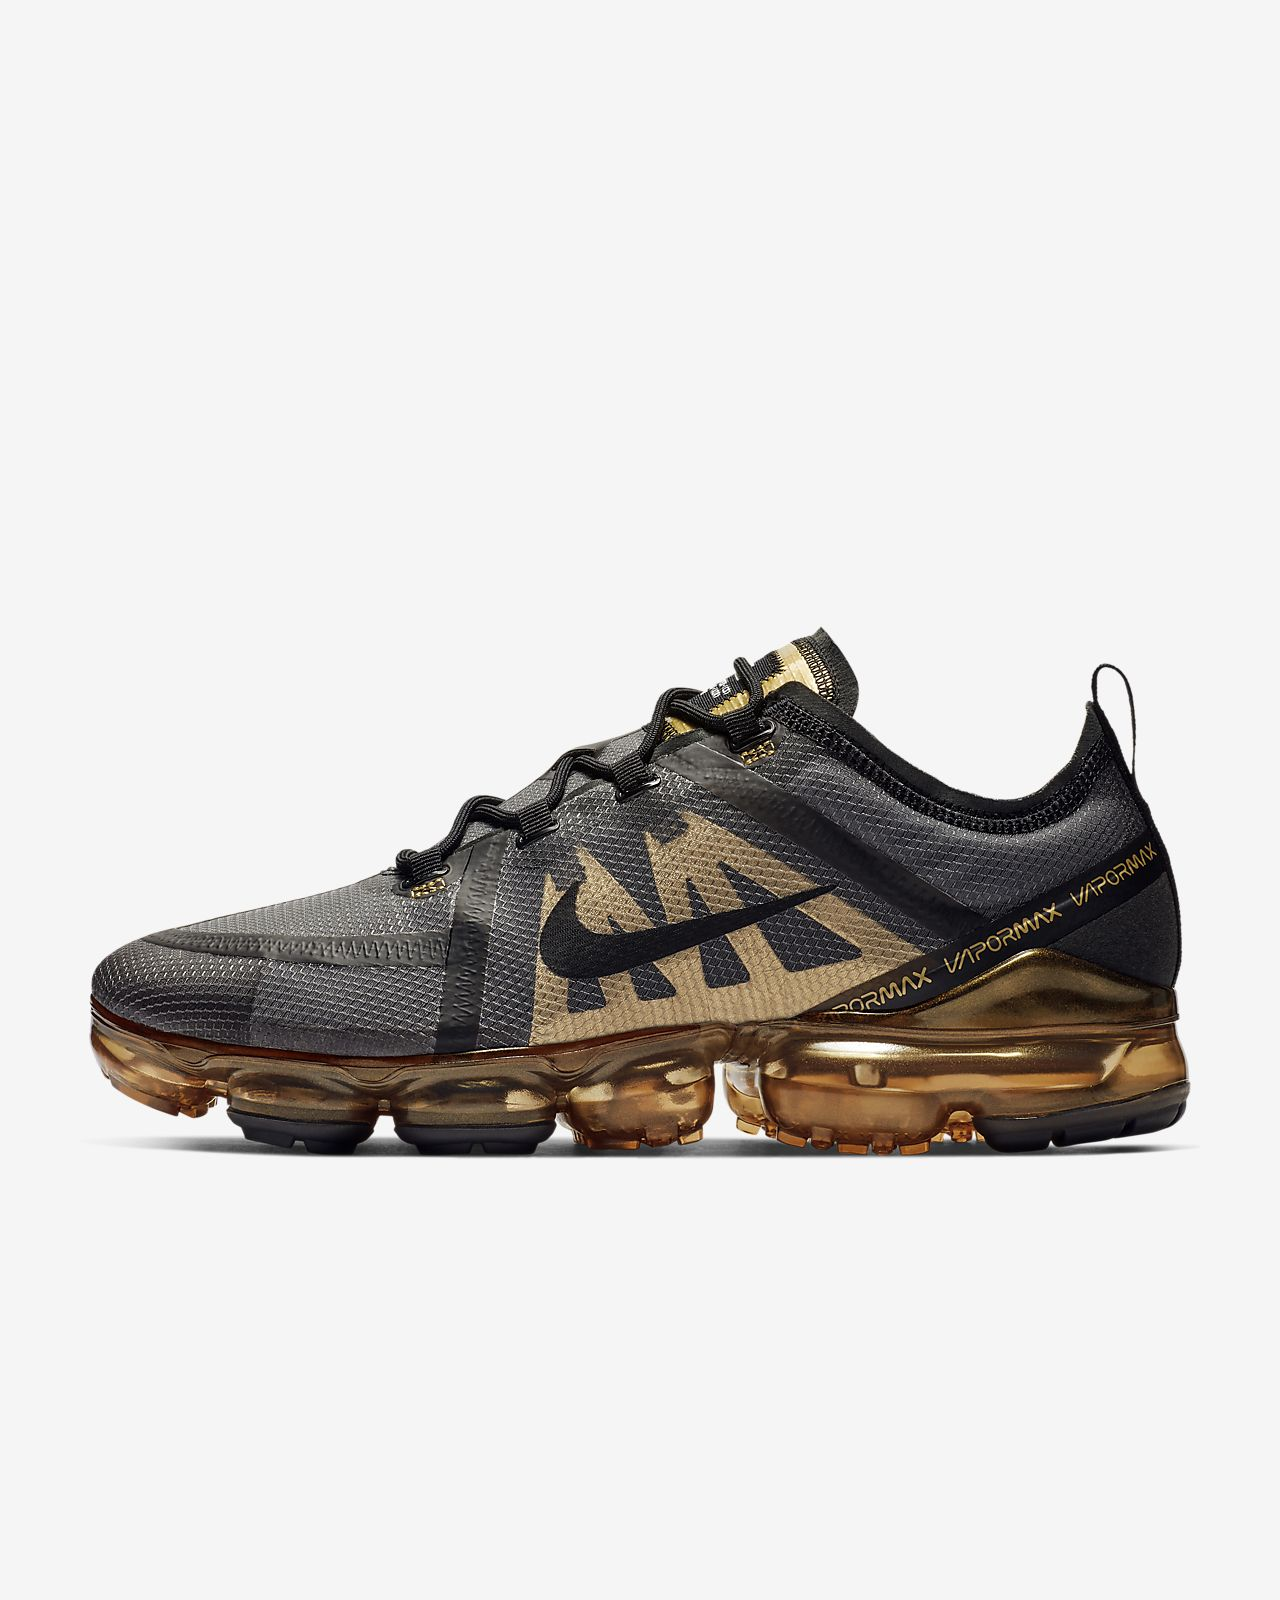 outlet store bc8a5 2fb8e ... Chaussure Nike Air VaporMax 2019